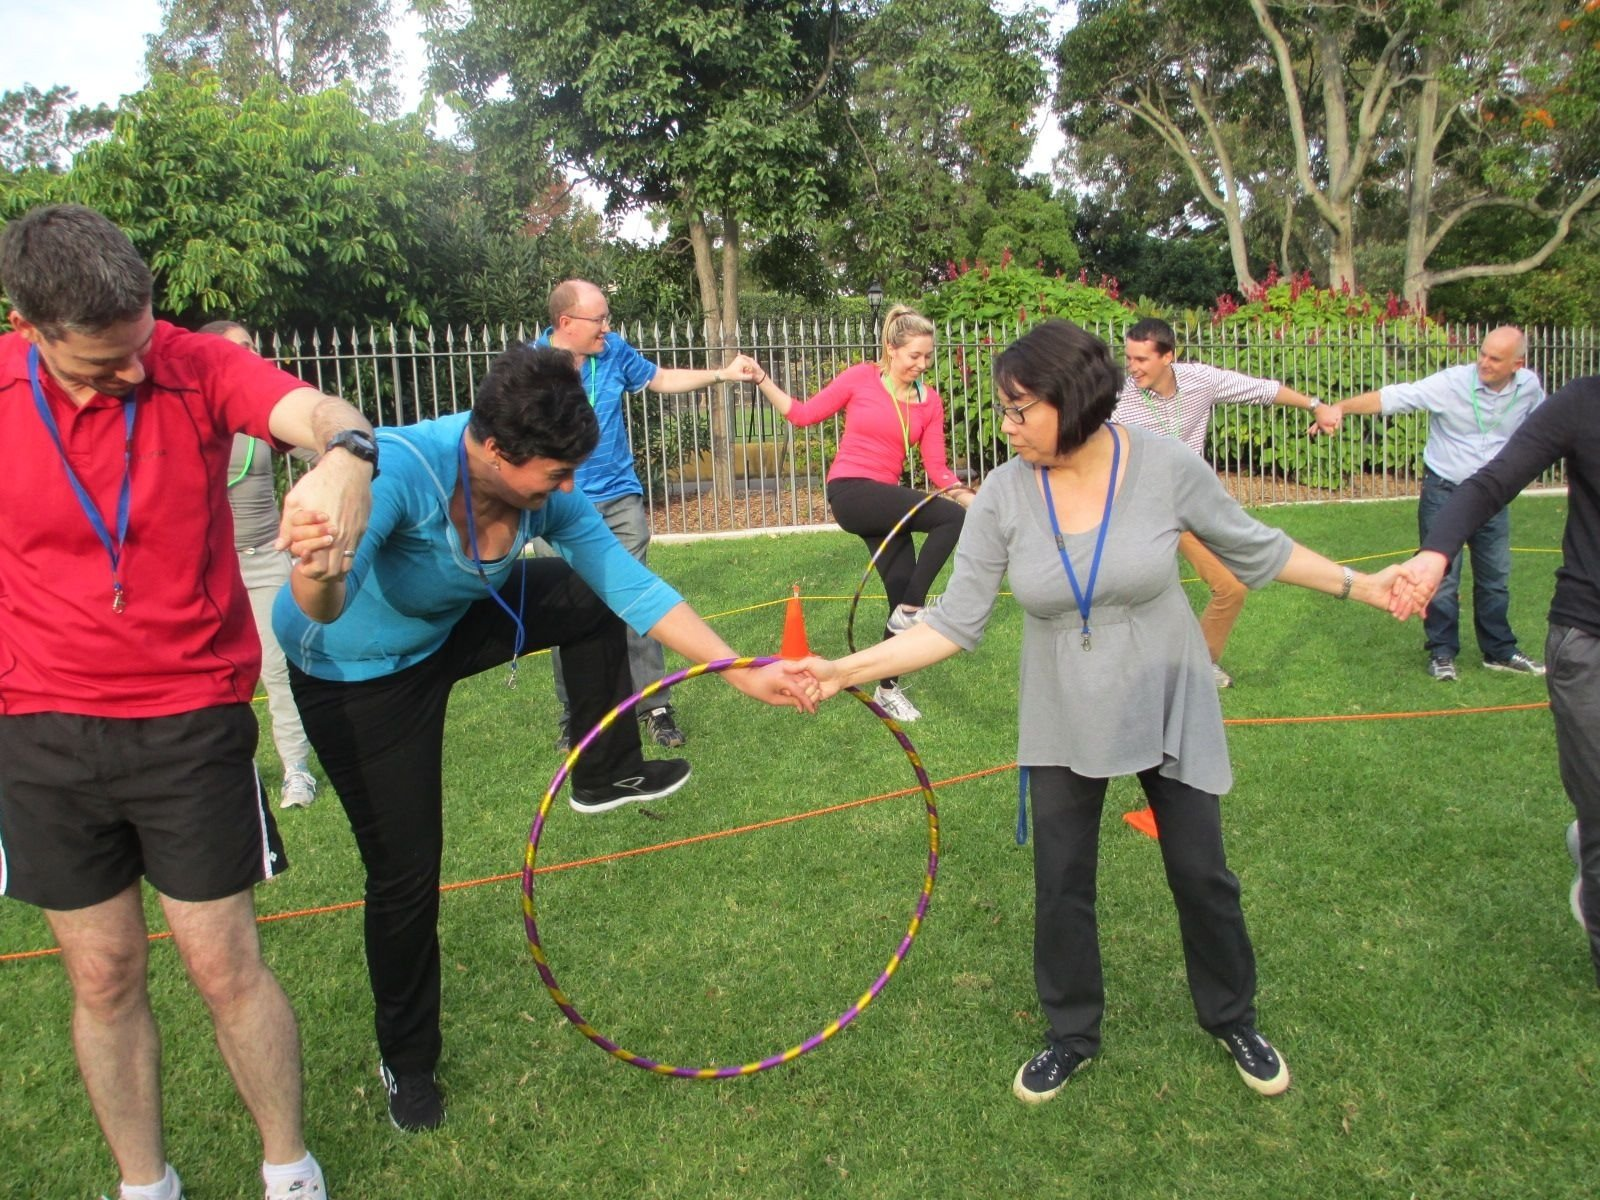 10 Famous Team Building Activities Ideas For Adults outdoor team building outdoor team building activities olympics 4 2020